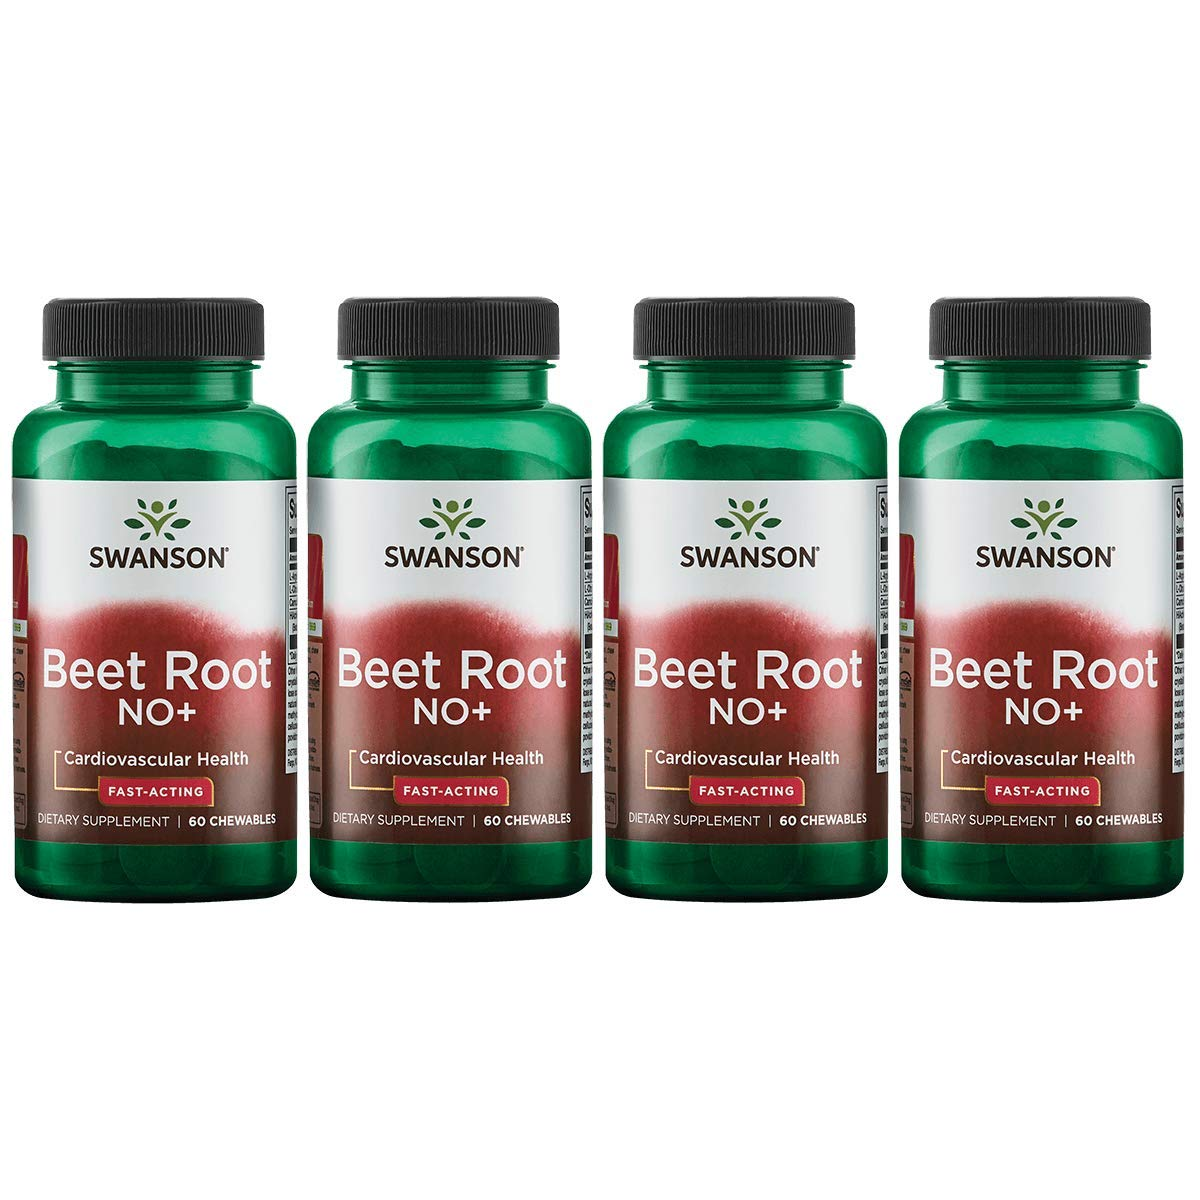 Swanson Beet Root No Fast-Acting 60 Chwbls 4 Pack